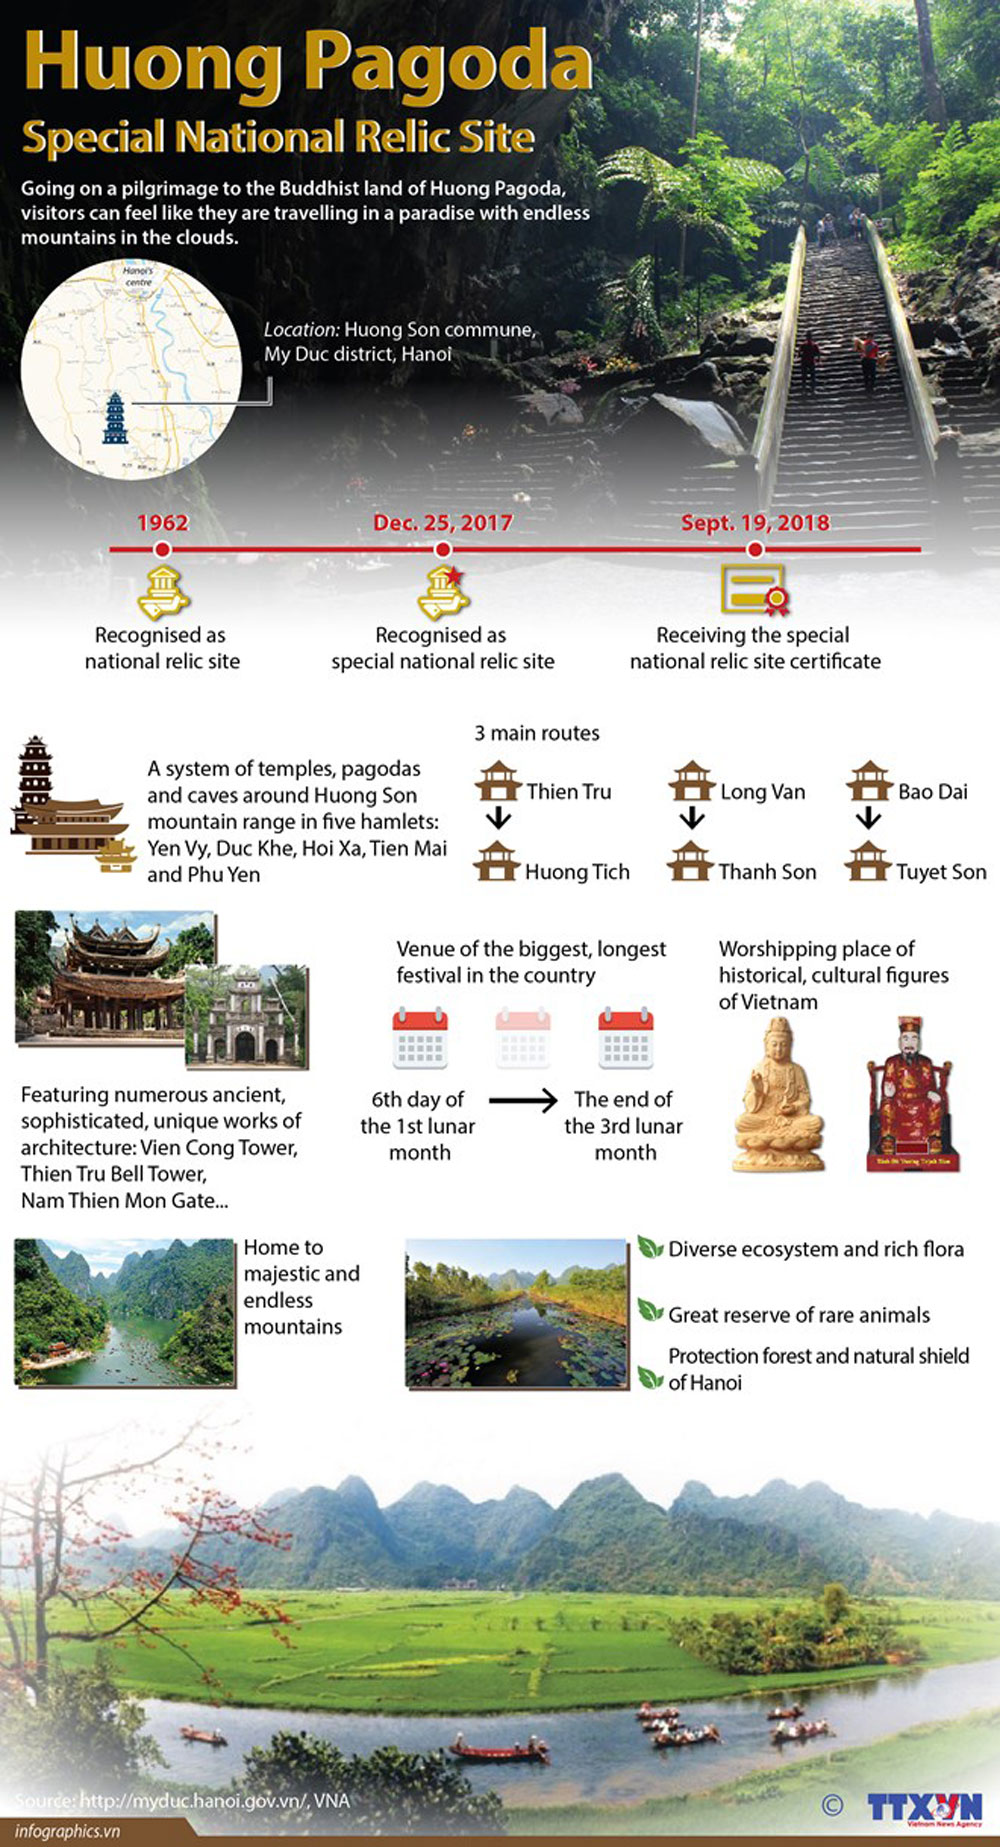 Huong Pagoda, Special National Relic Site, endless mountian, biggest longgest festival, ecosystem, cultural features